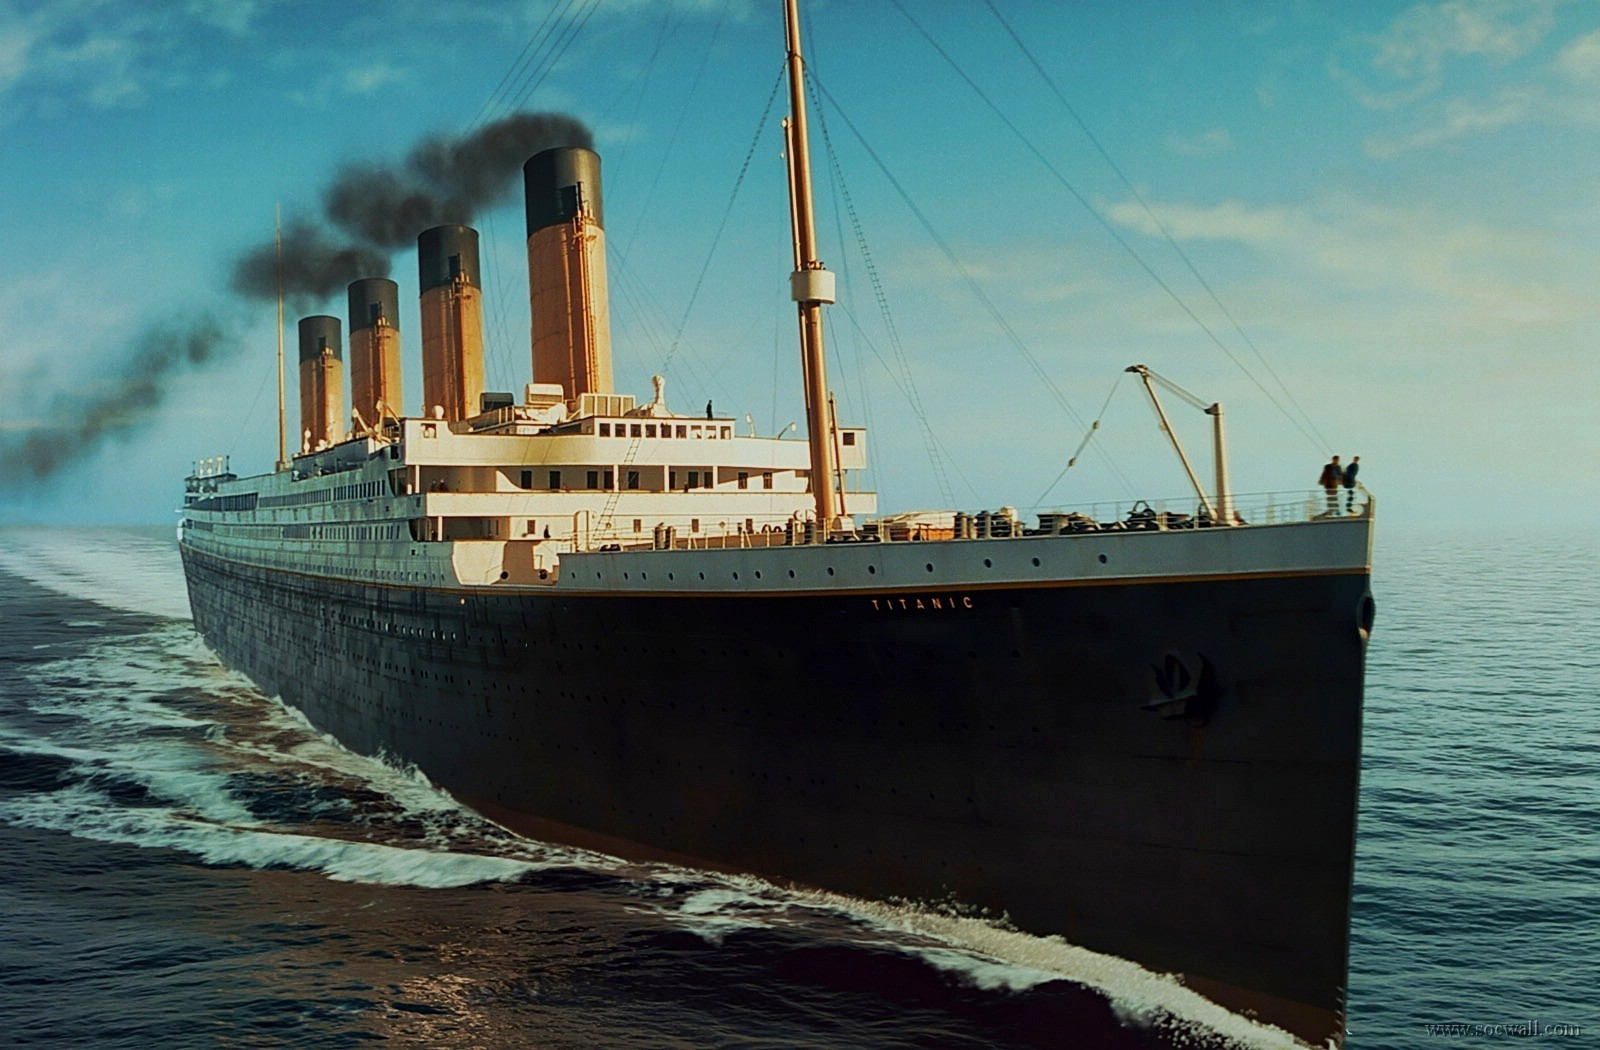 titanic ship images free - photo #3